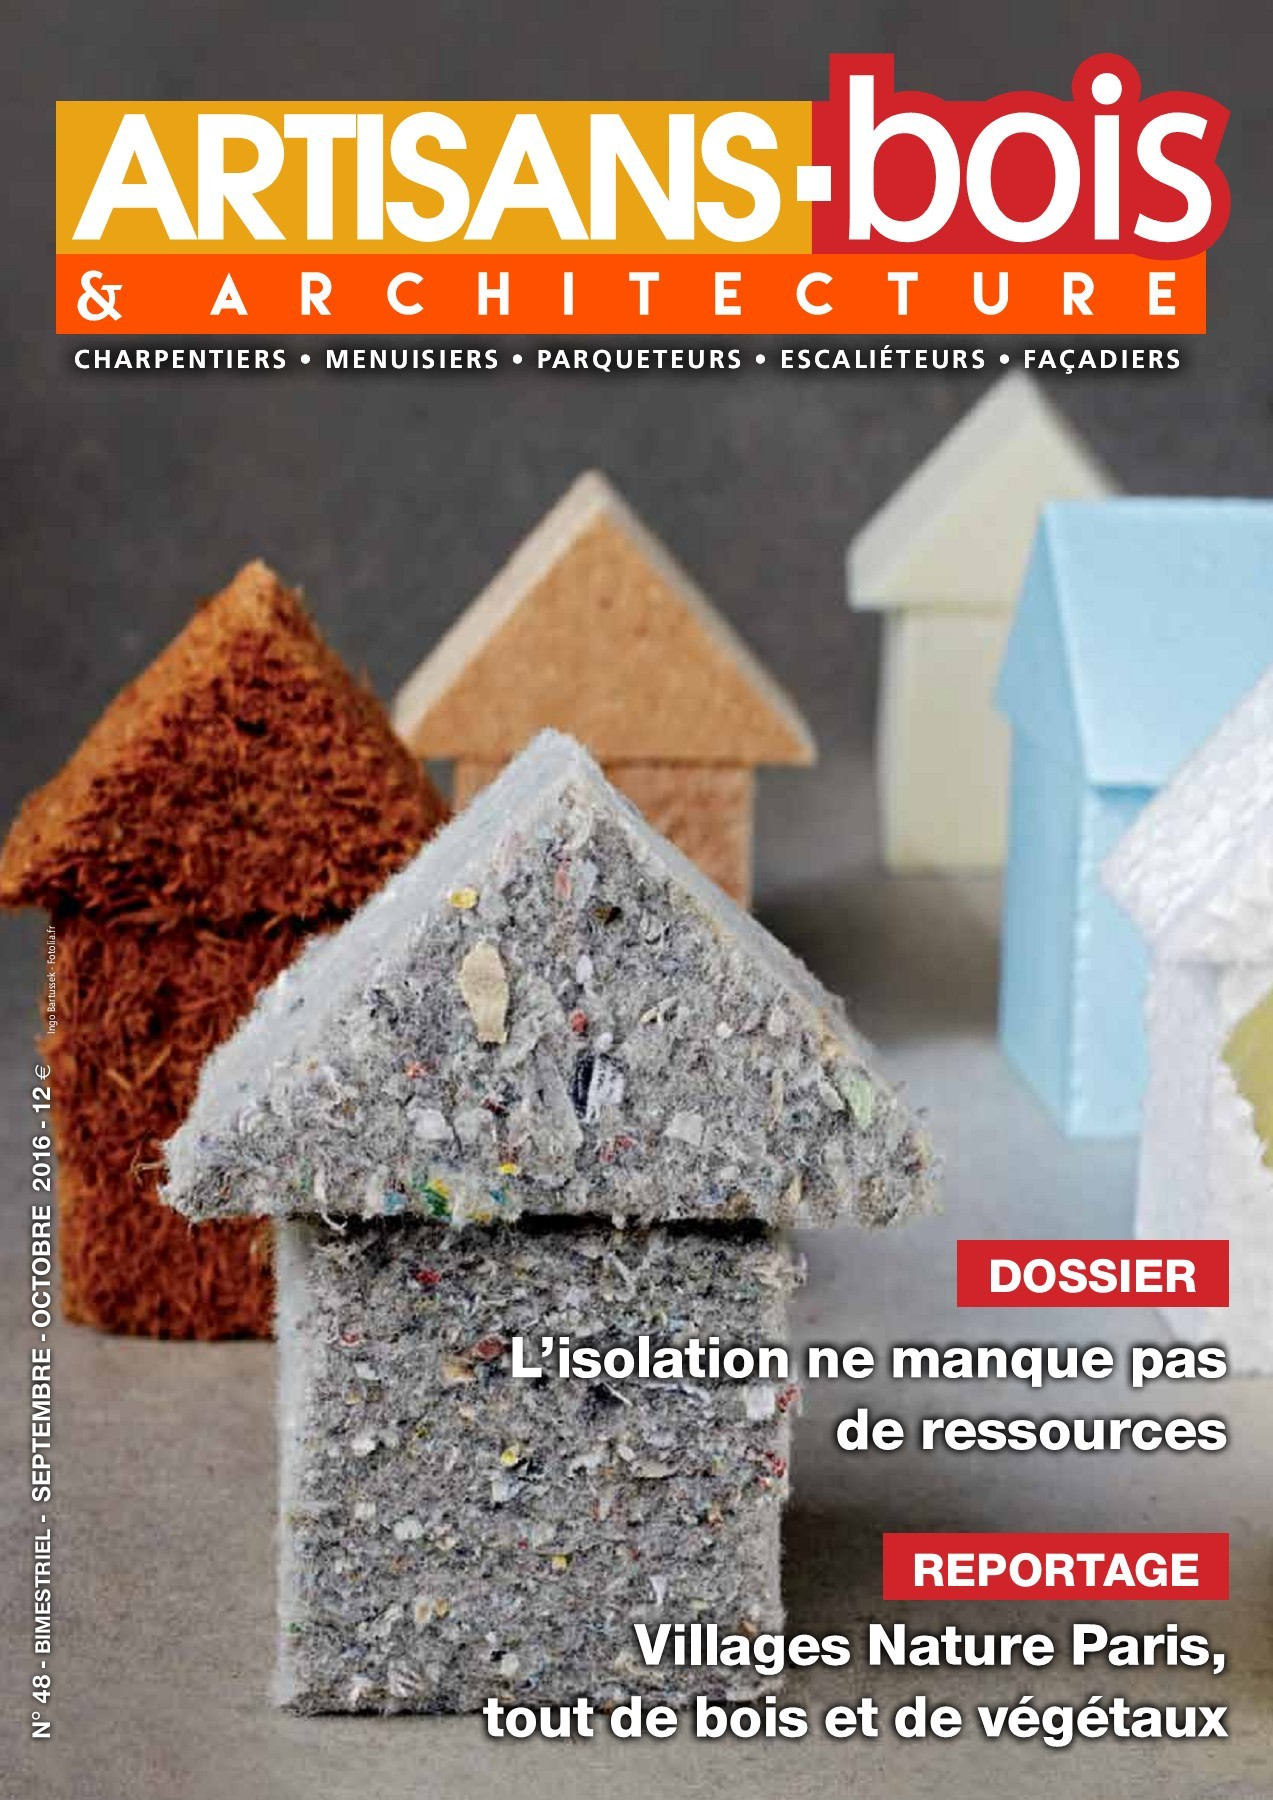 Terrasse Composite Neolife Artisans Bois N48 Pages 1 22 Text Version Fliphtml5